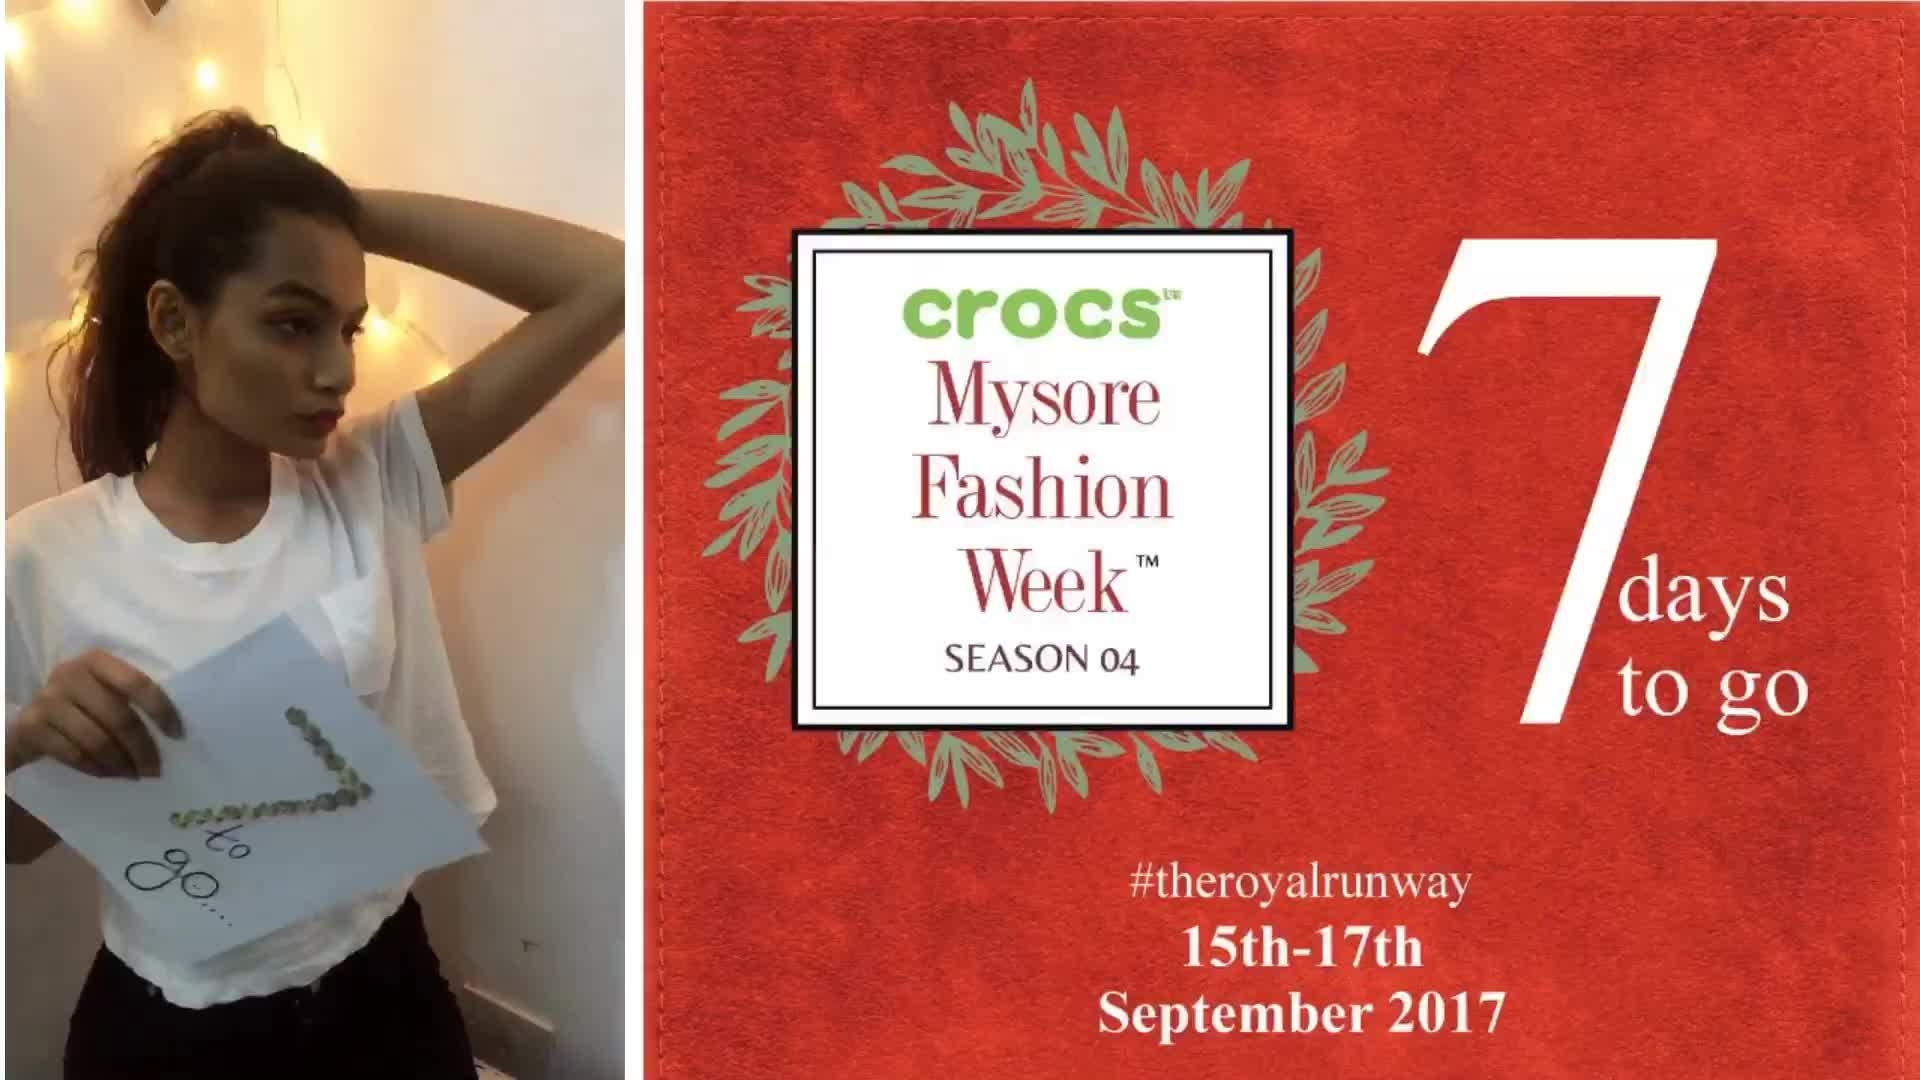 #theroyalrunway will have leading designers from India showcasing their work! #MysoreFashionWeek17